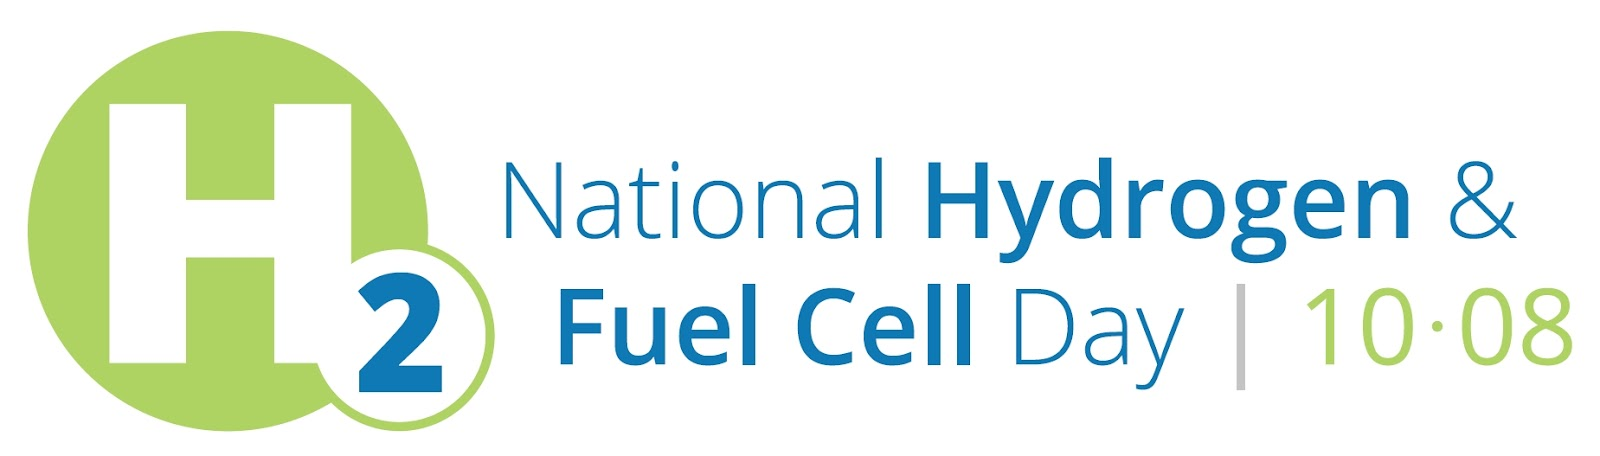 National Hydrogen & Fuel Cell Day logo